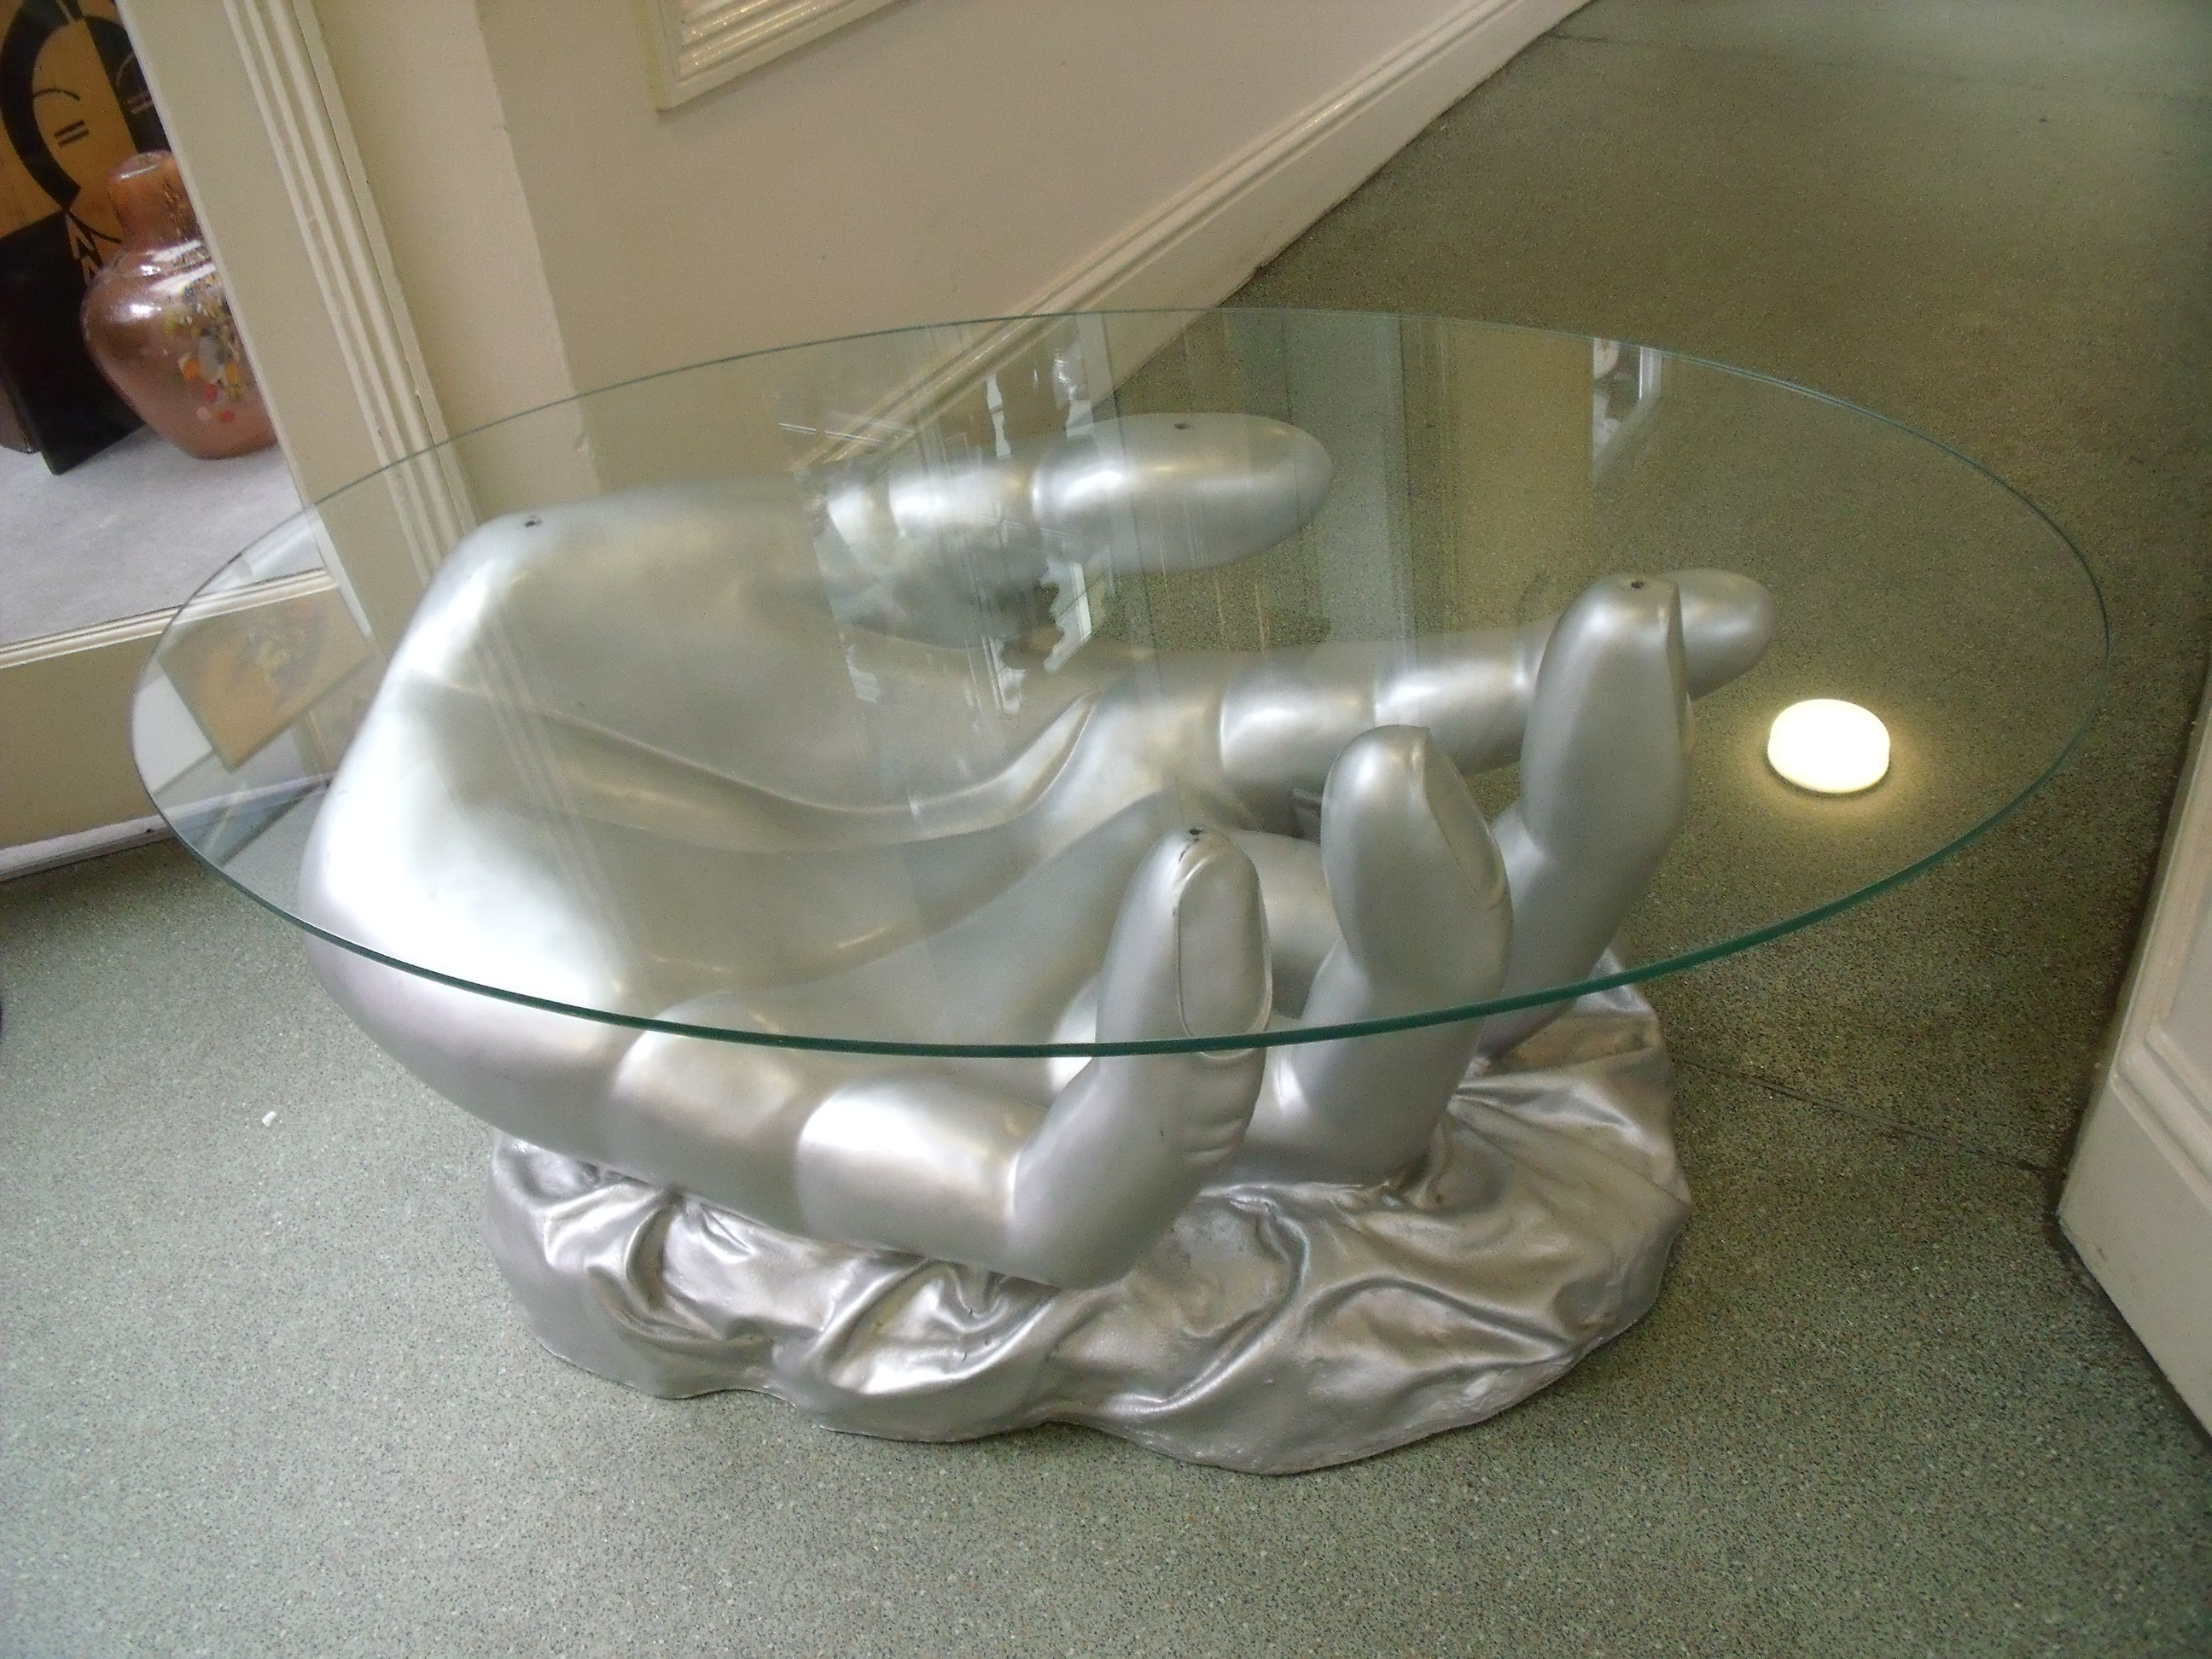 Incroyable A Pop Art Coffee Table, In The Shape Of A Surreal, Large Silver Hand.